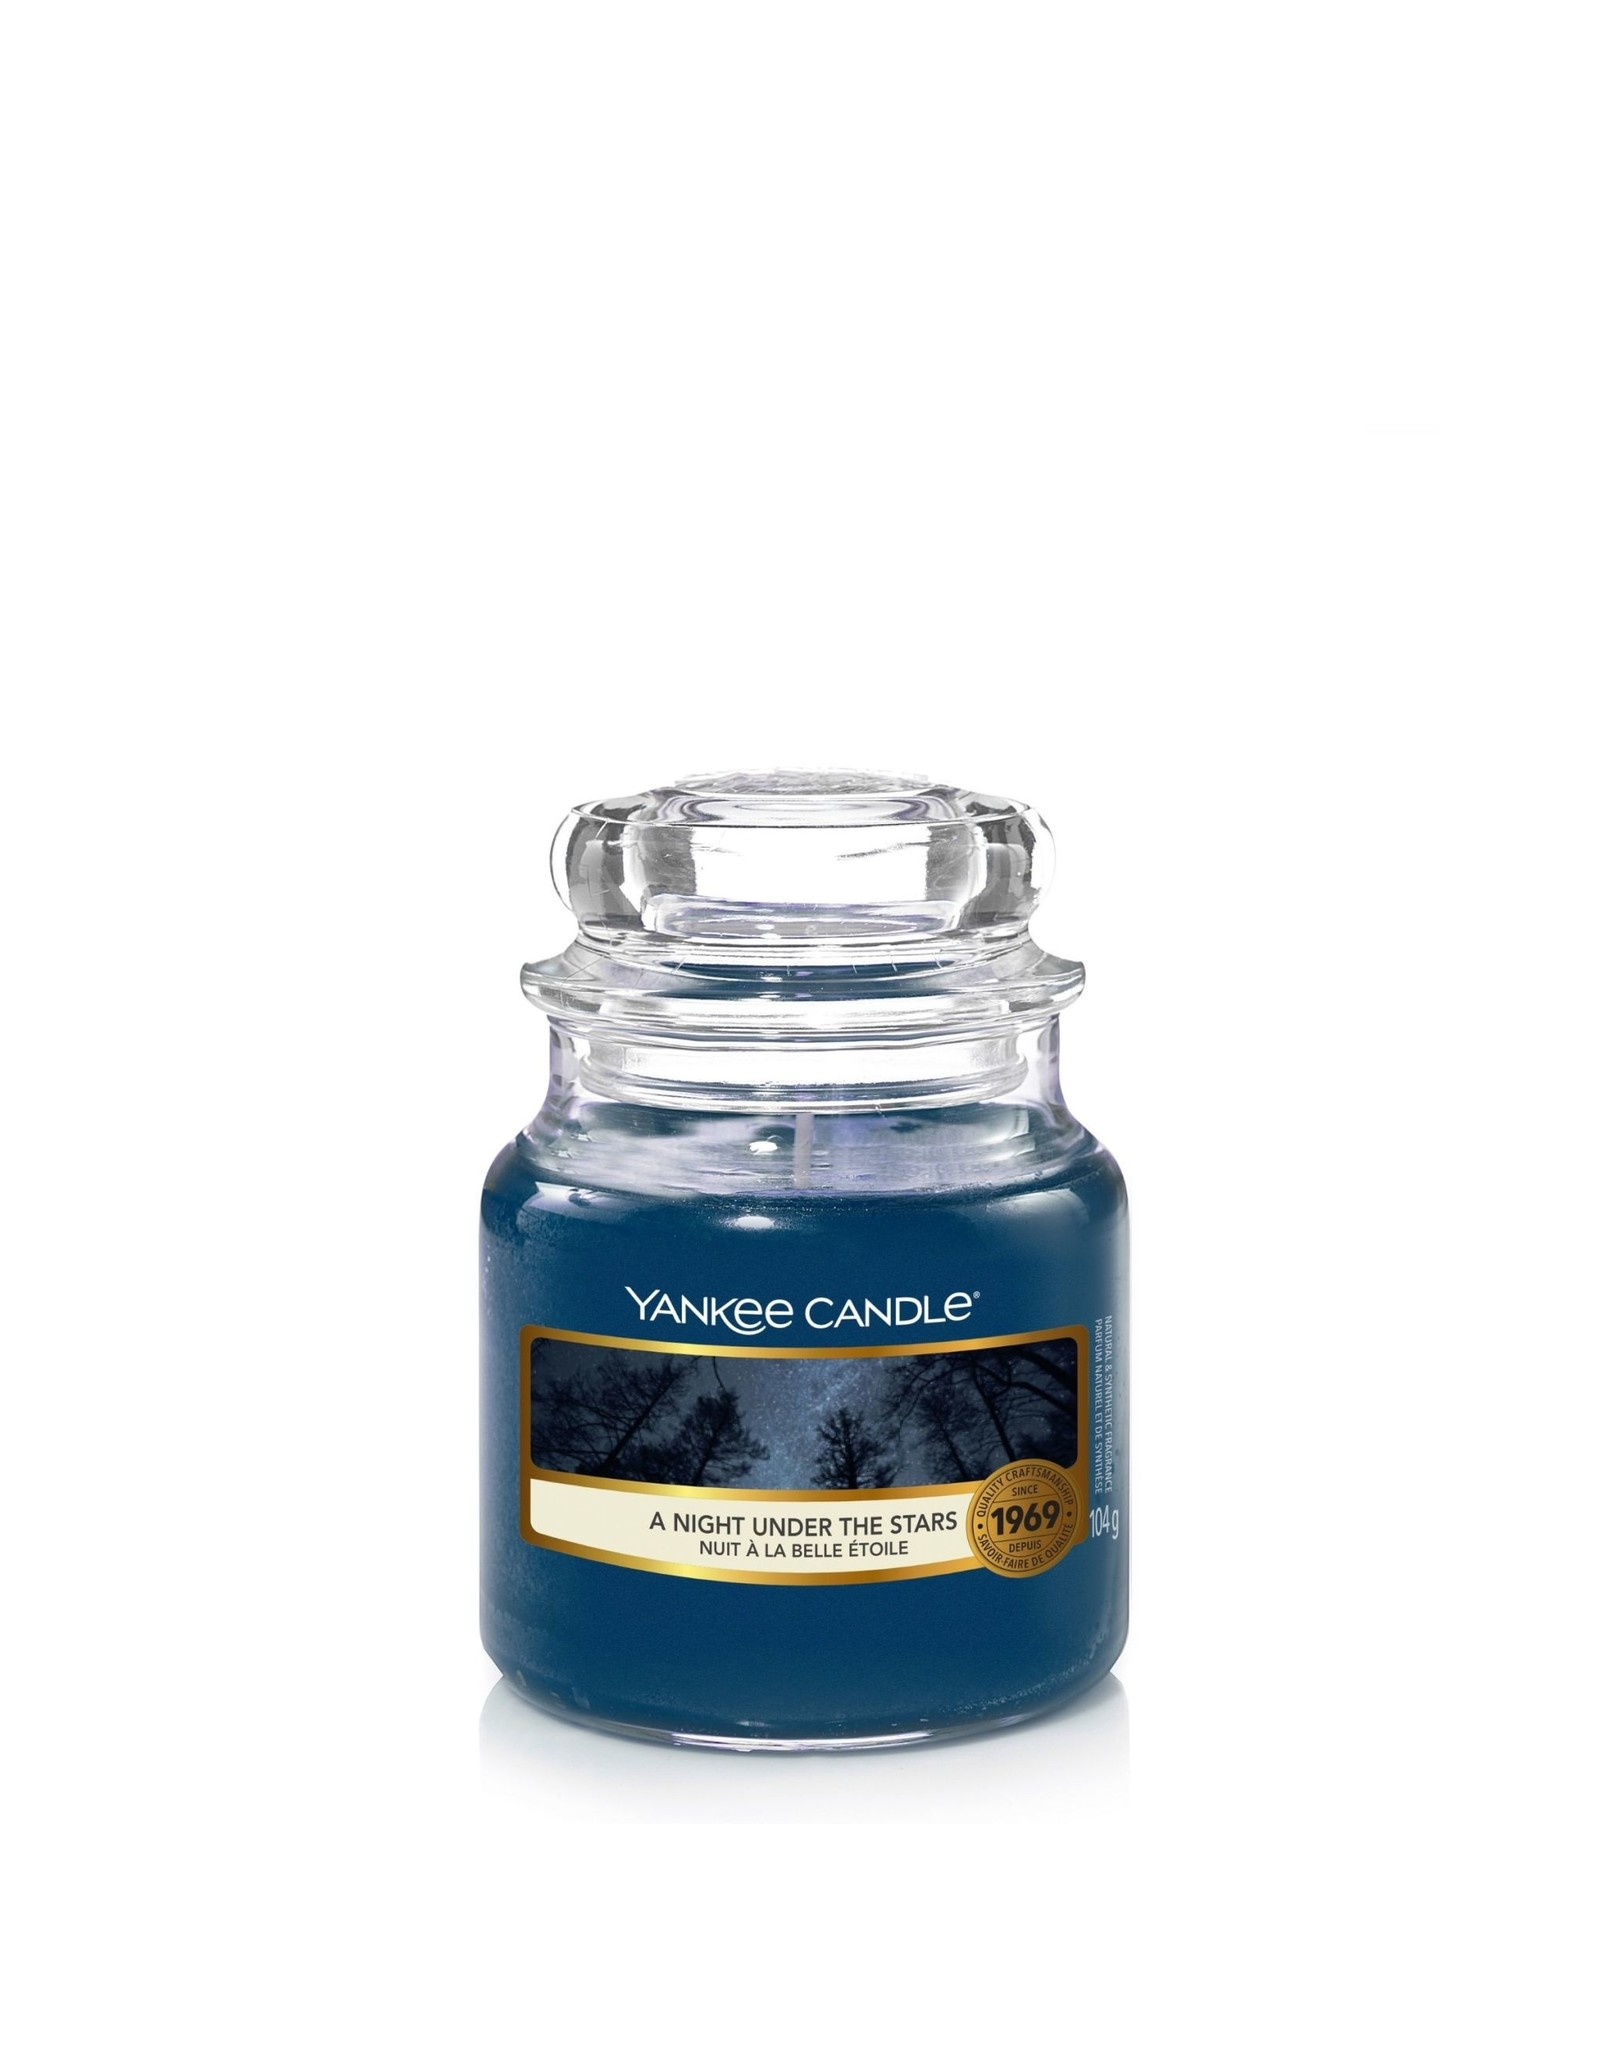 Yankee Candle A Night under the Stars - Small Jar